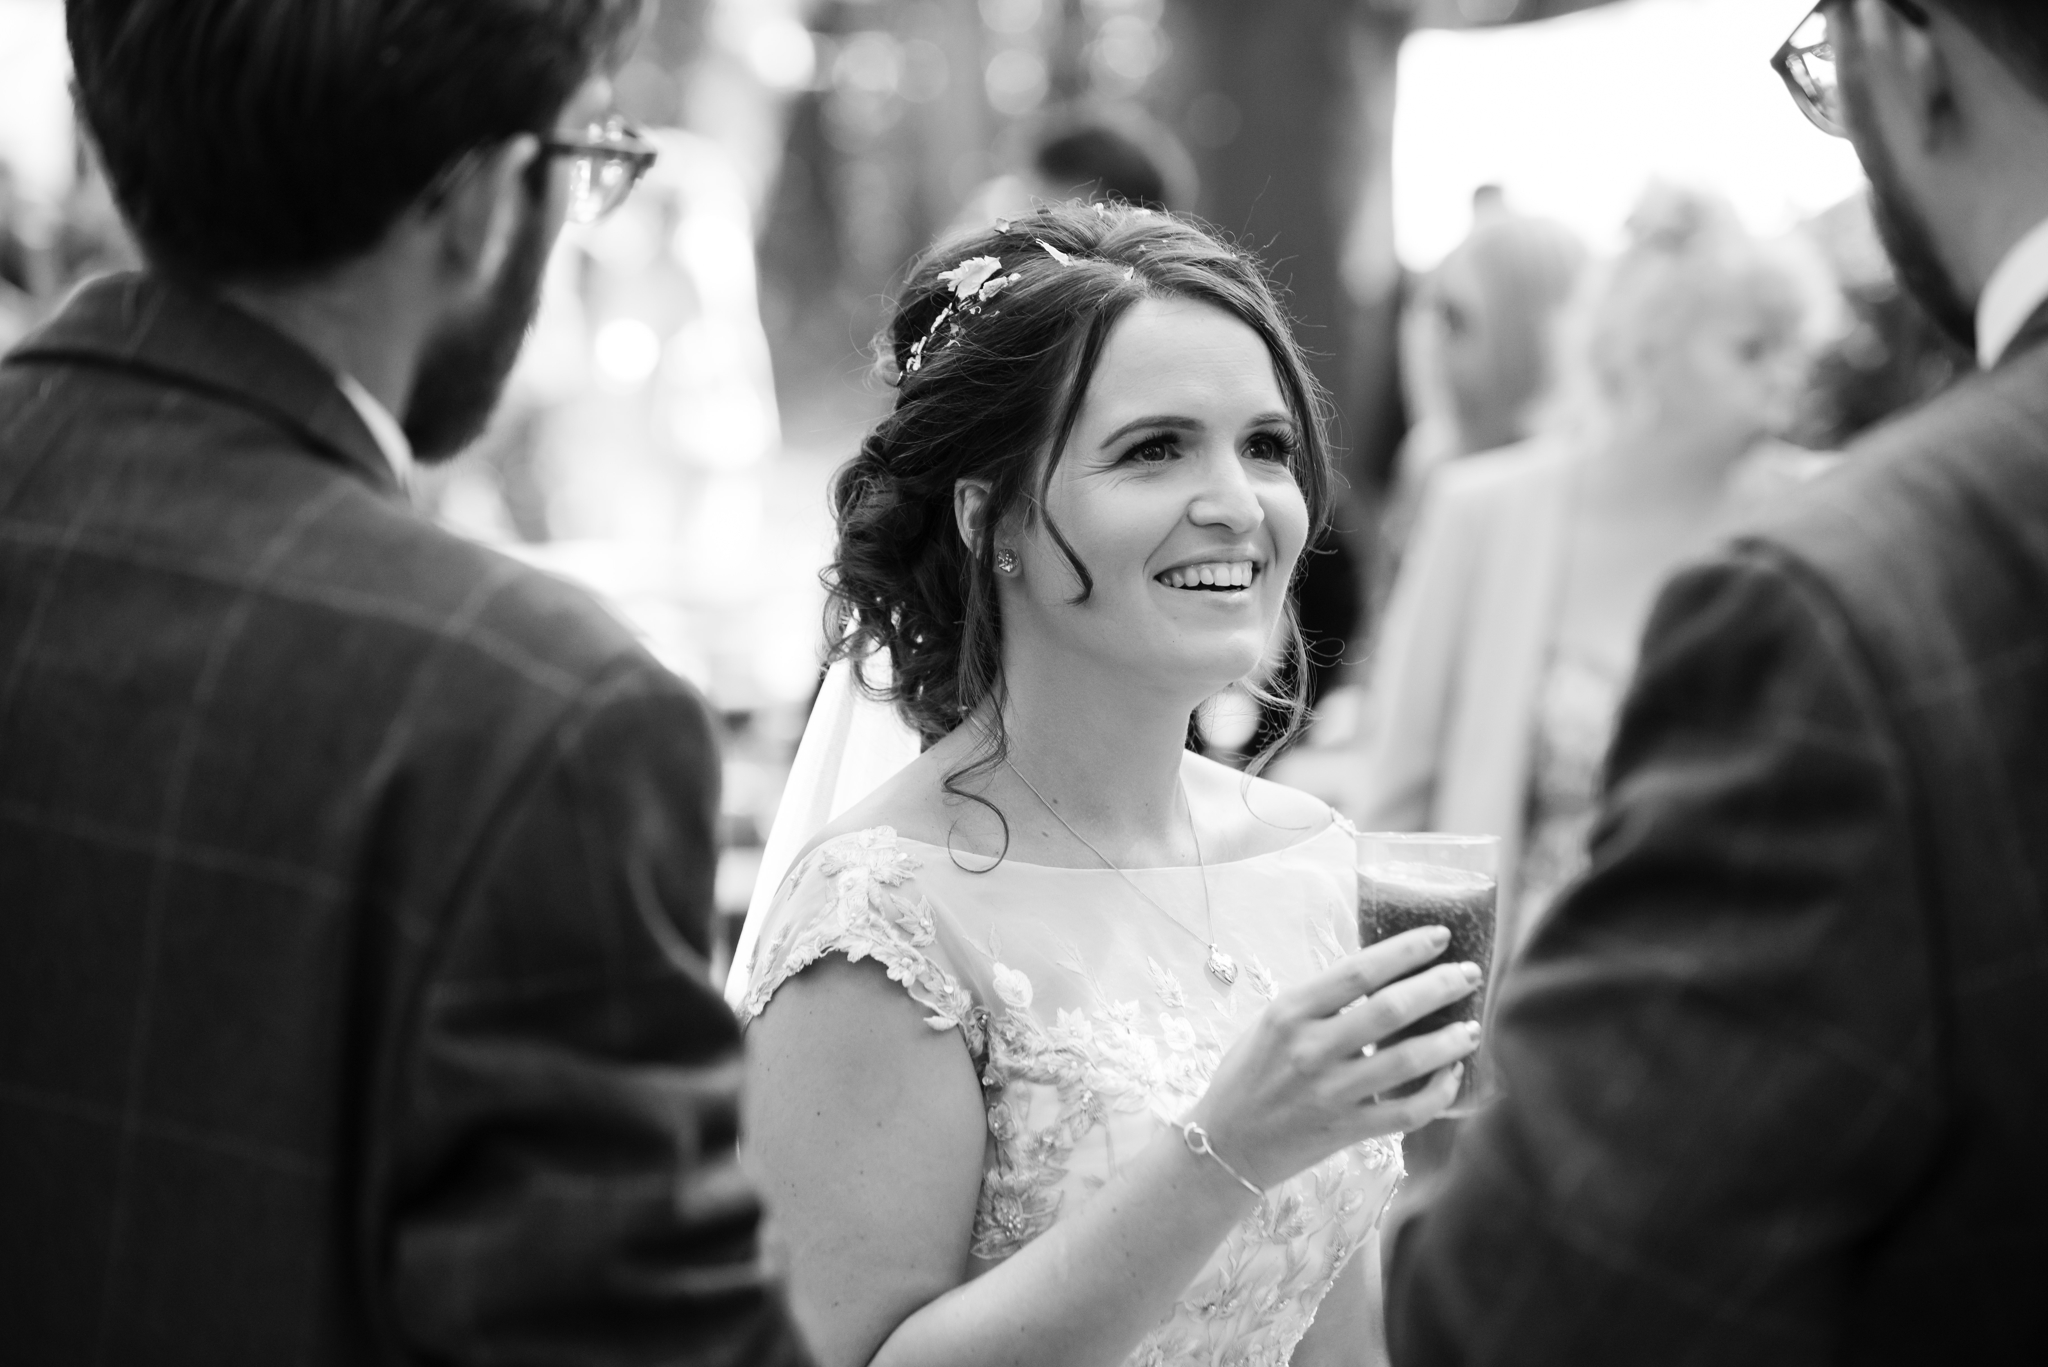 The bride has a drink after the wedding ceremony